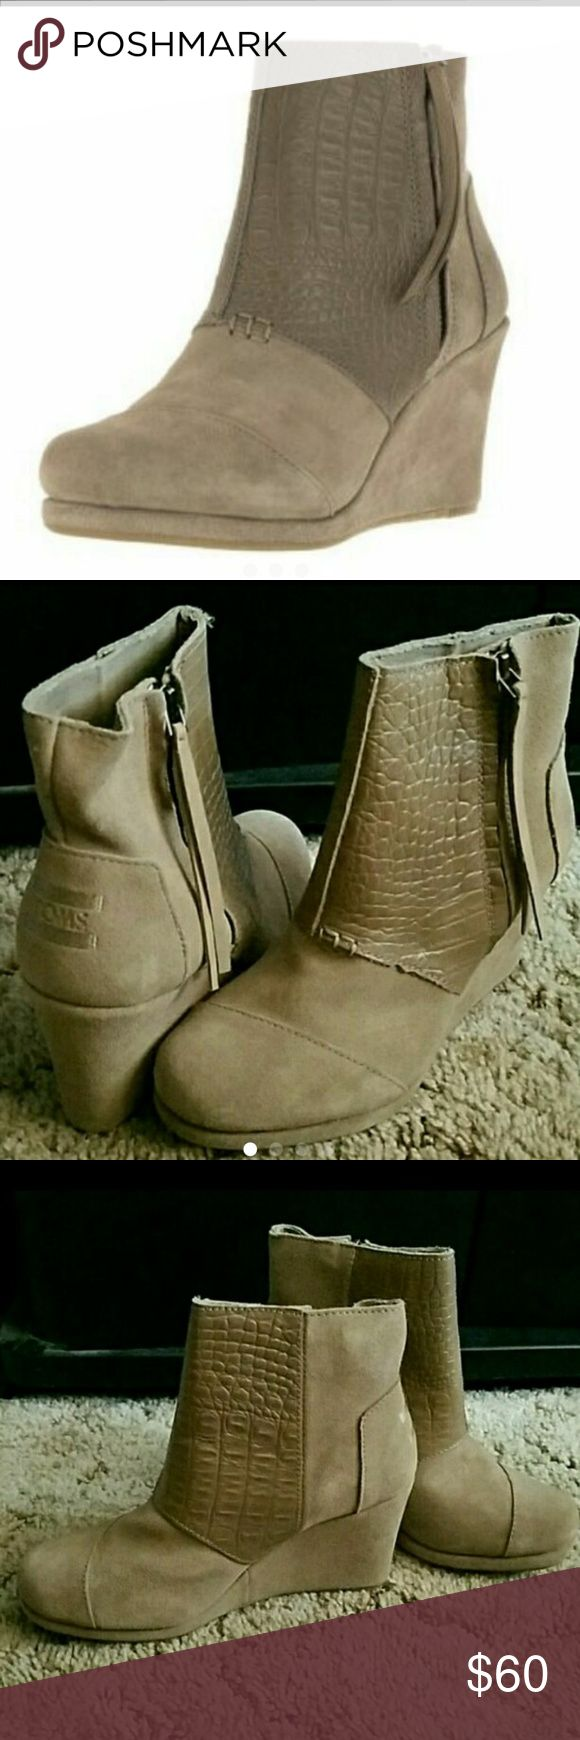 FREE SOCKS! TOMS DESERT WEDGE BOOTIES NEW. NO BOX TOMS Shoes Ankle Boots & Booties